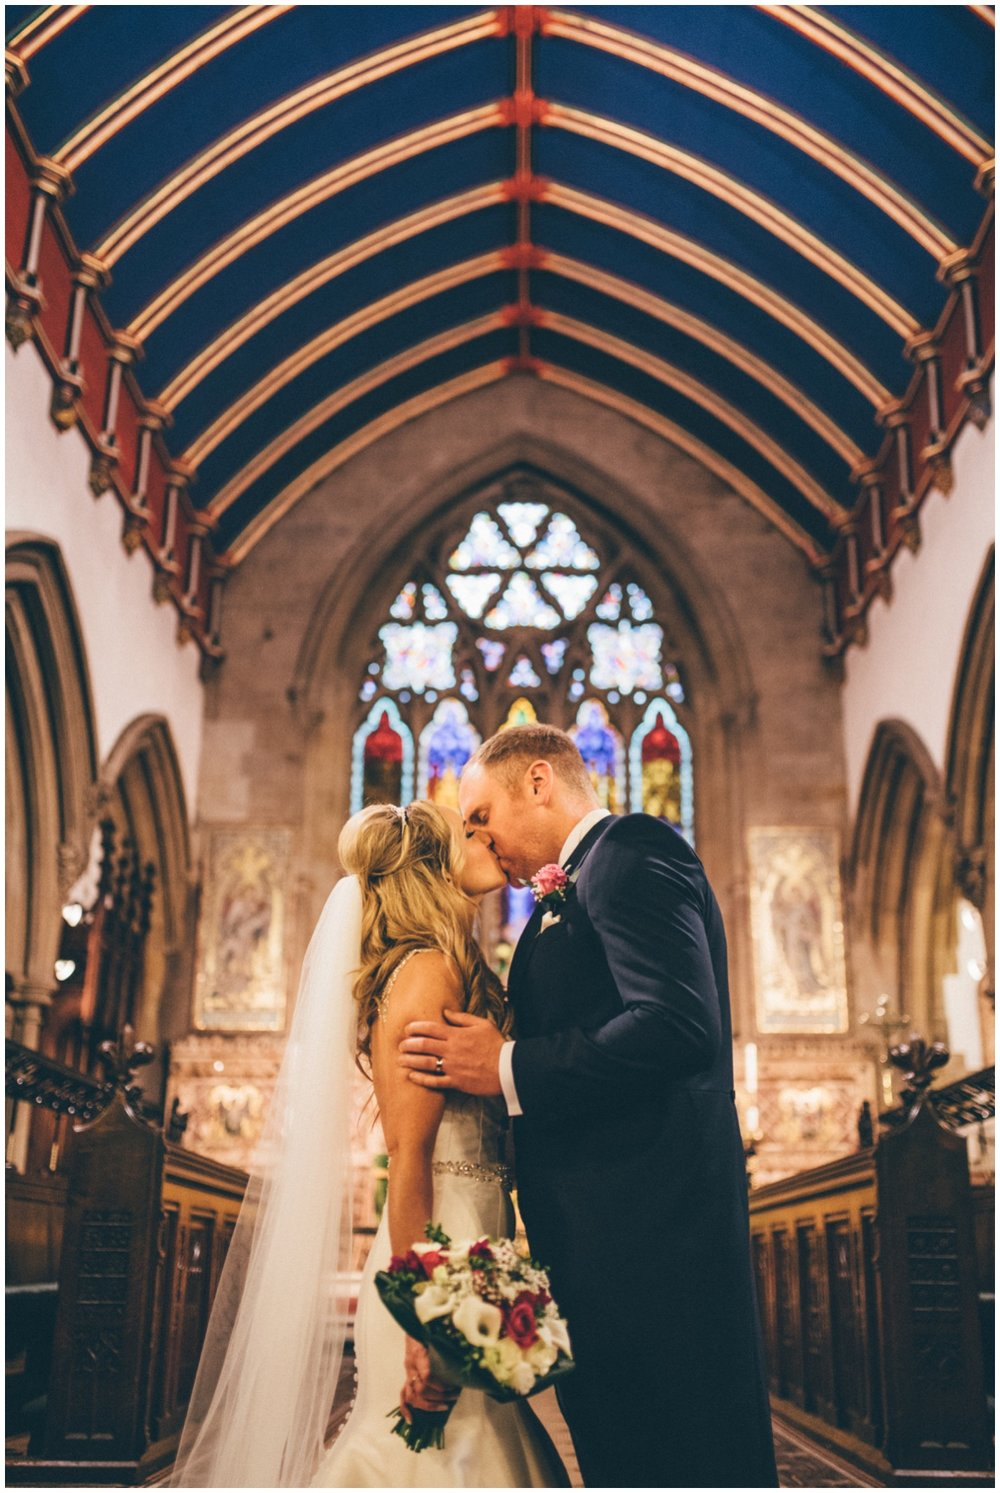 New husband and wife share their First Kiss at St Mark's Church in Worsley.